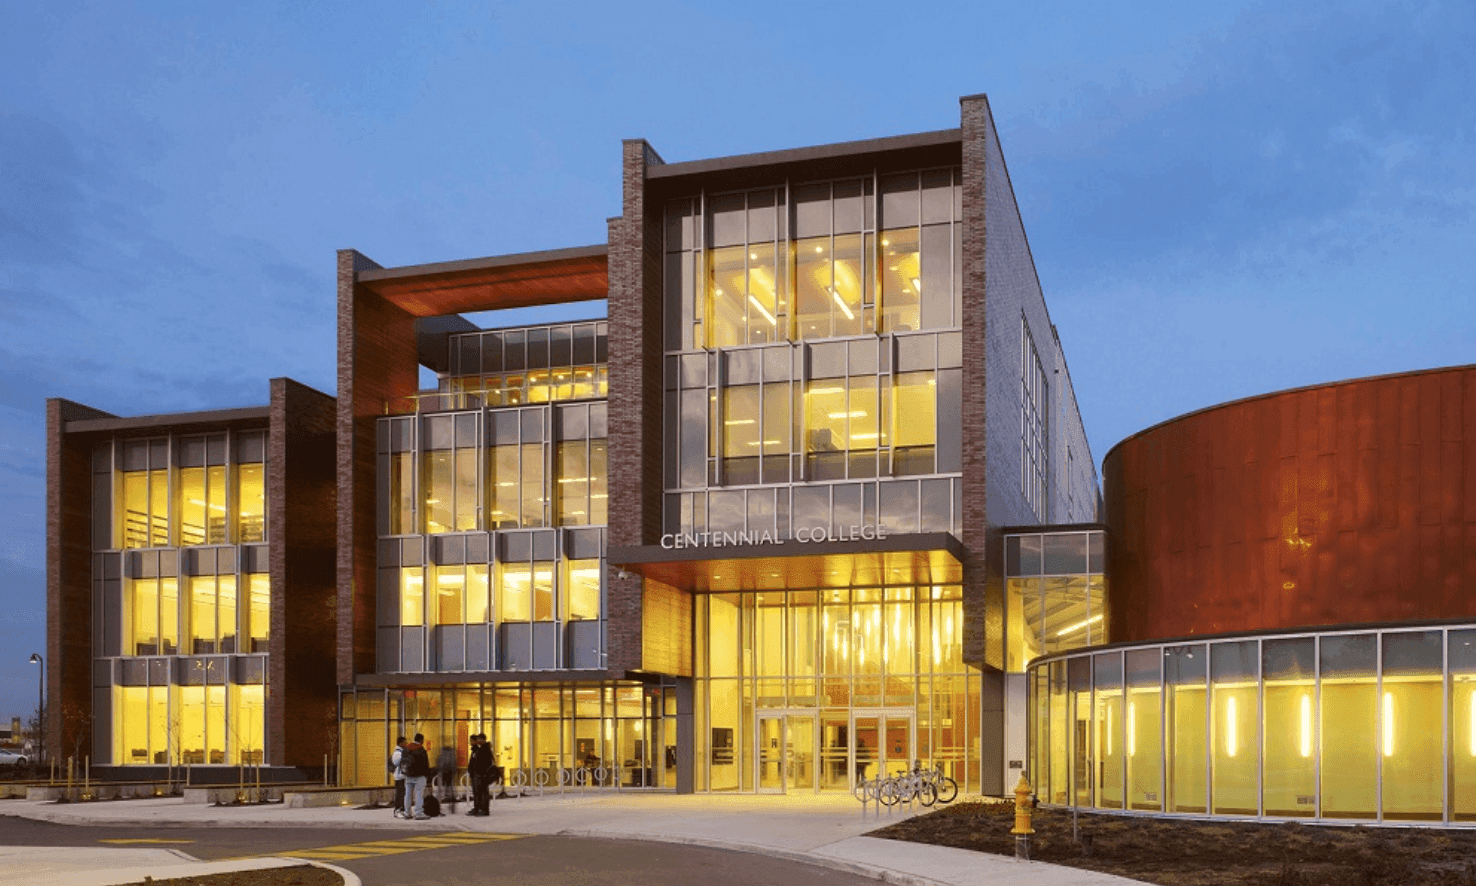 10 Easiest Courses at Centennial College